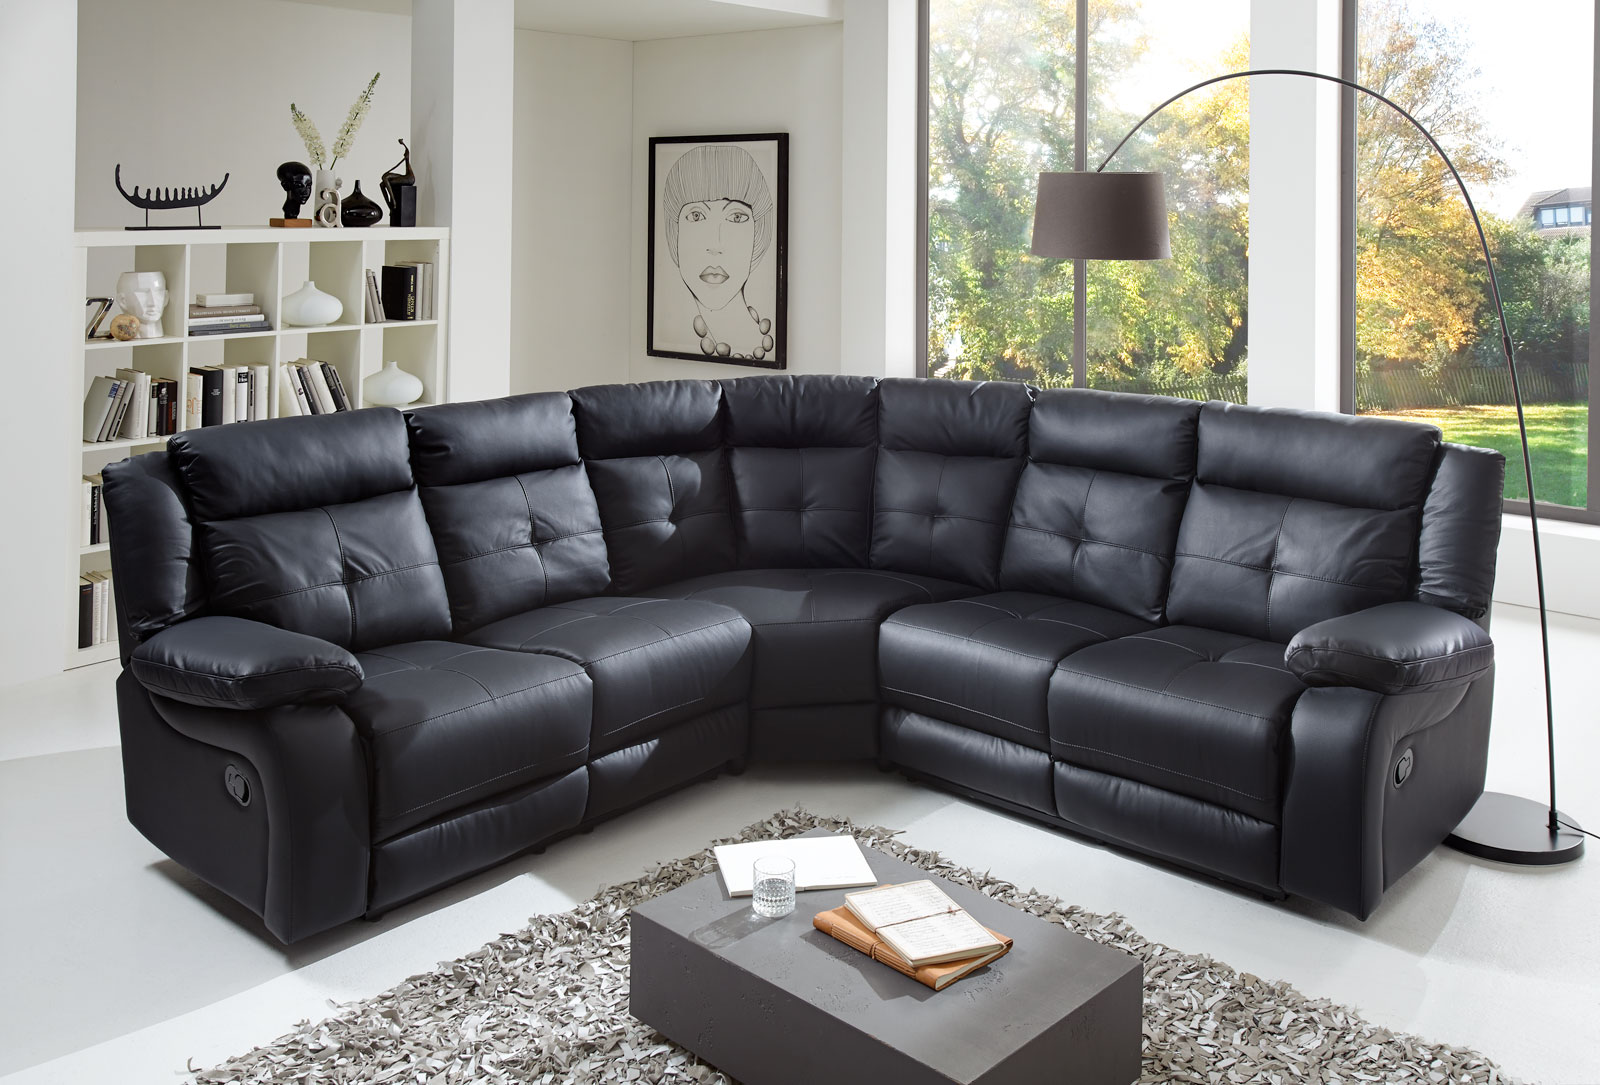 sale ecksofa wohnlandschaft relaxsessel 190 cm schwarz alessio. Black Bedroom Furniture Sets. Home Design Ideas